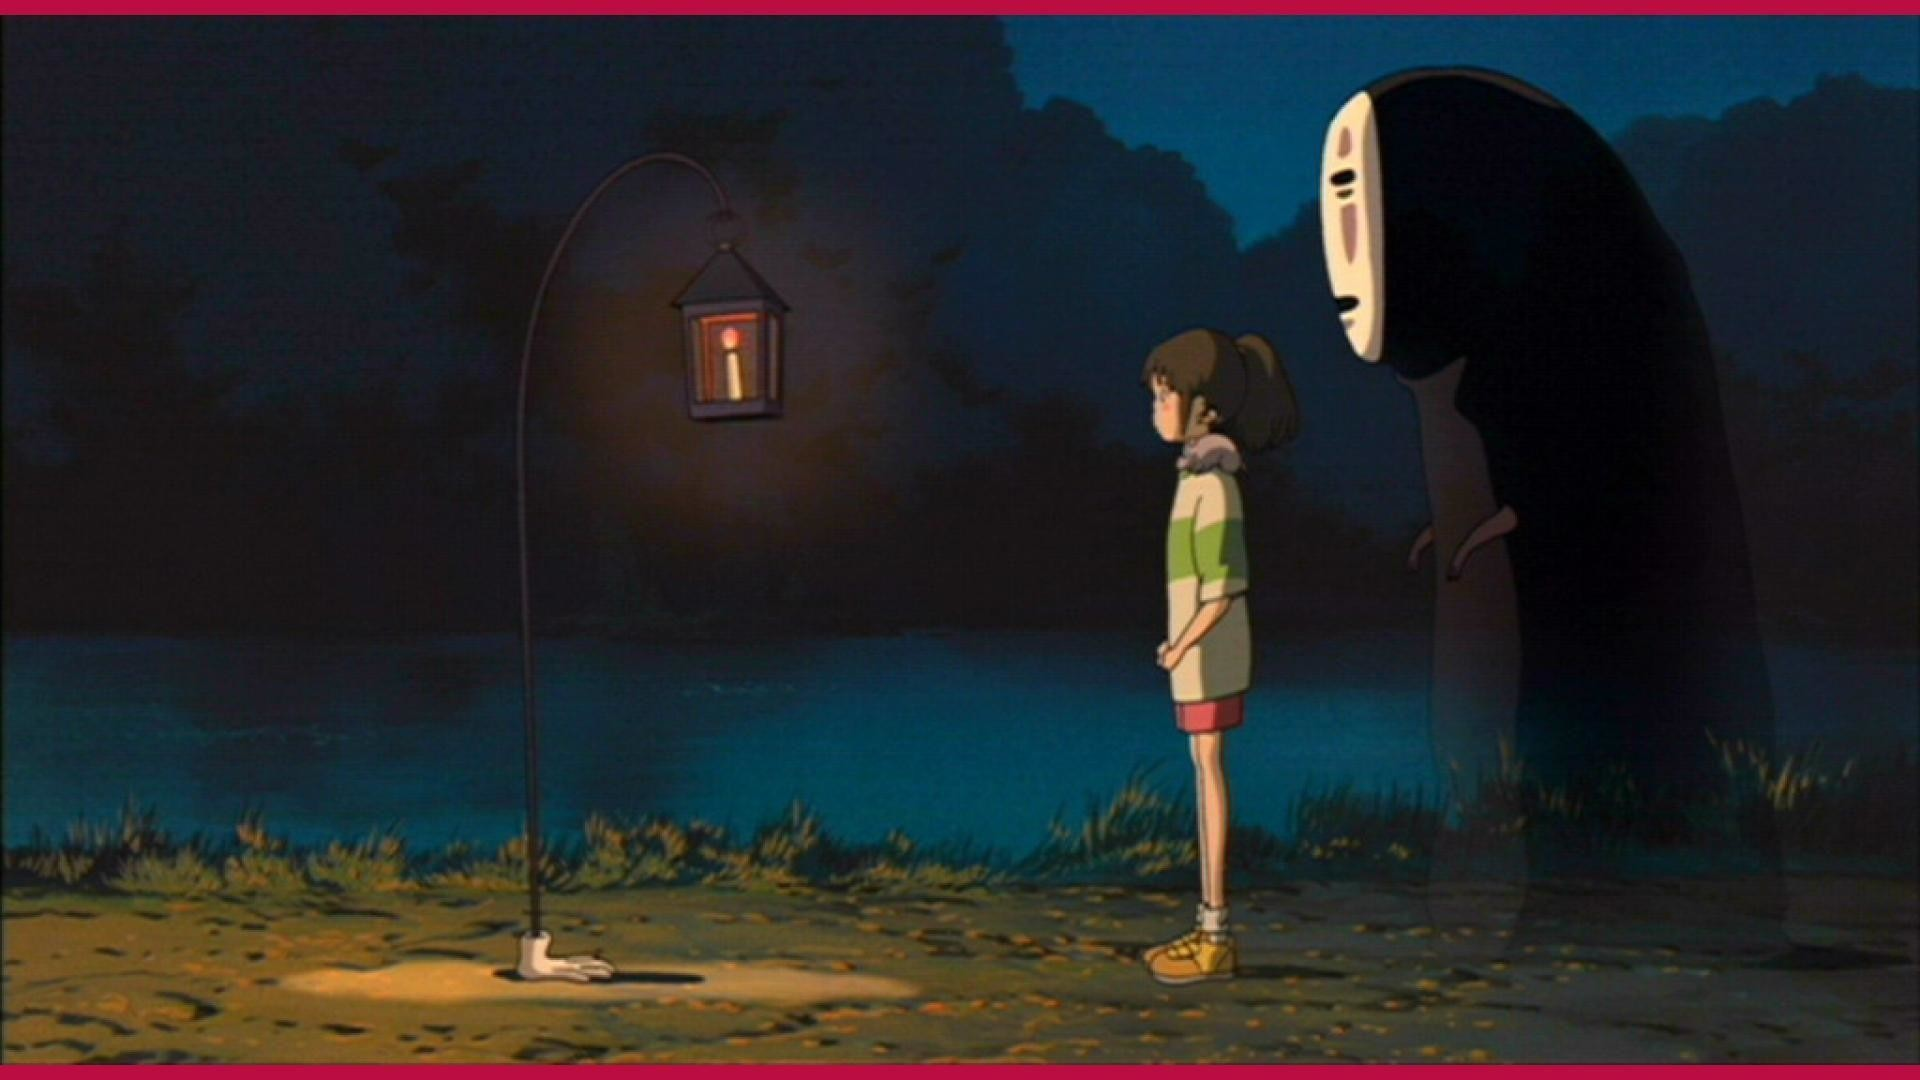 1920x1200 Hd Spirited Away Backgrounds Windows Apple Artworks High Definition Samsung Wallpapers Wallpaper For Iphone Download Pictures 1920A 1200